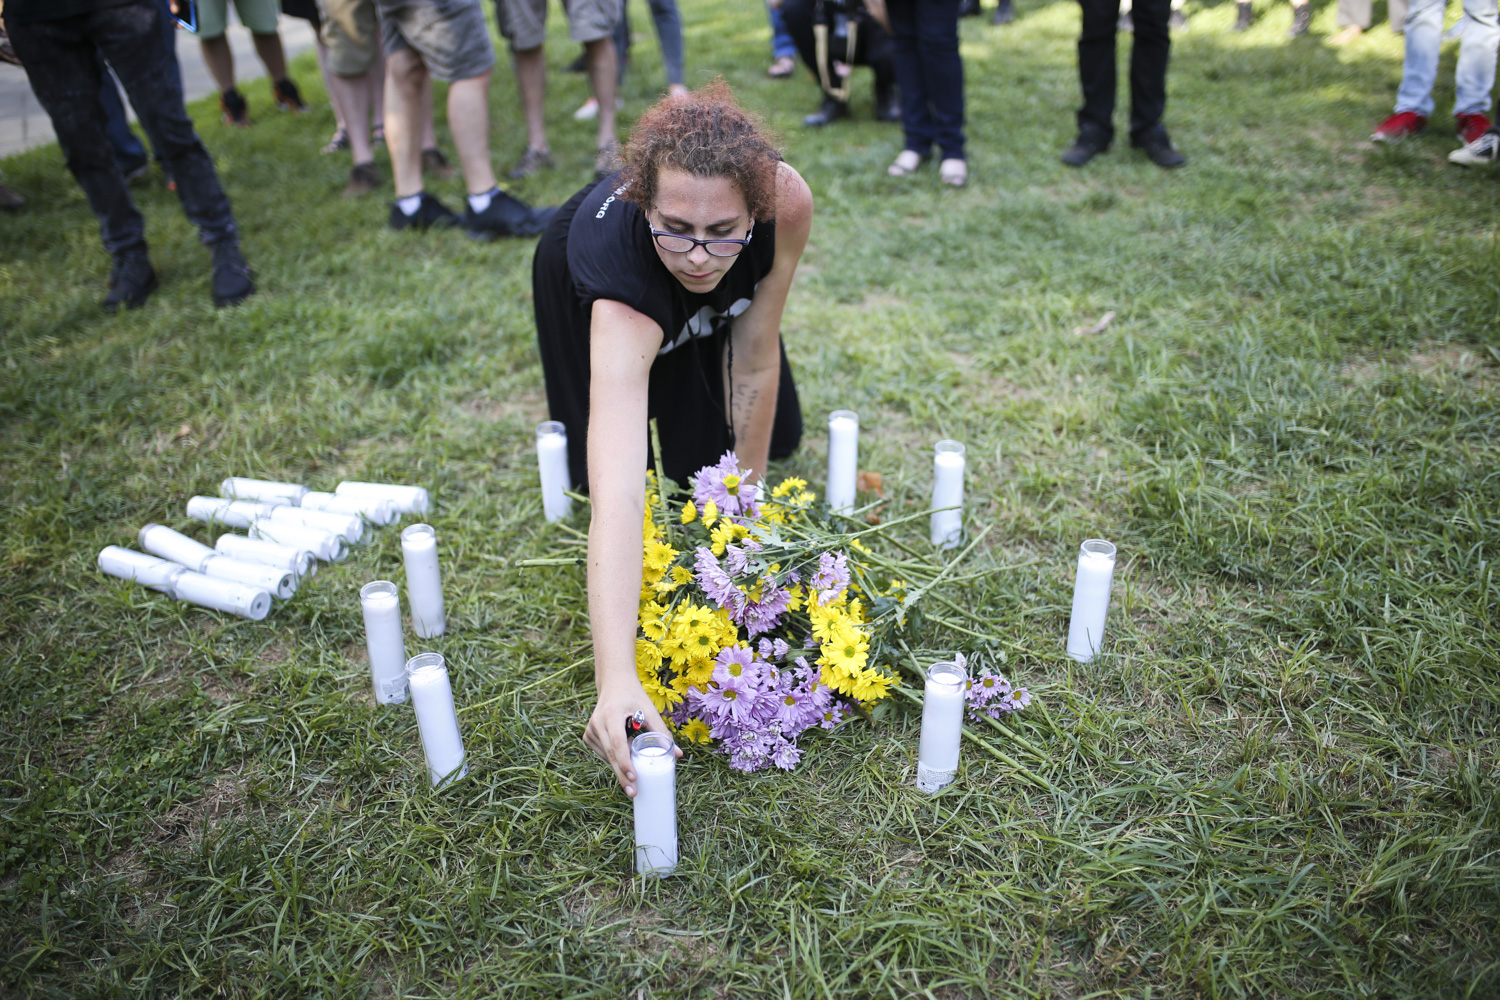 A woman lays candles in the grass during a vigil for Heather Heyer who was killed during Saturday's protests in Charlottesville, at McGuffey Park in Charlottesville on Saturday, August 12, 2017. [Scott P. Yates/progress-index.com]